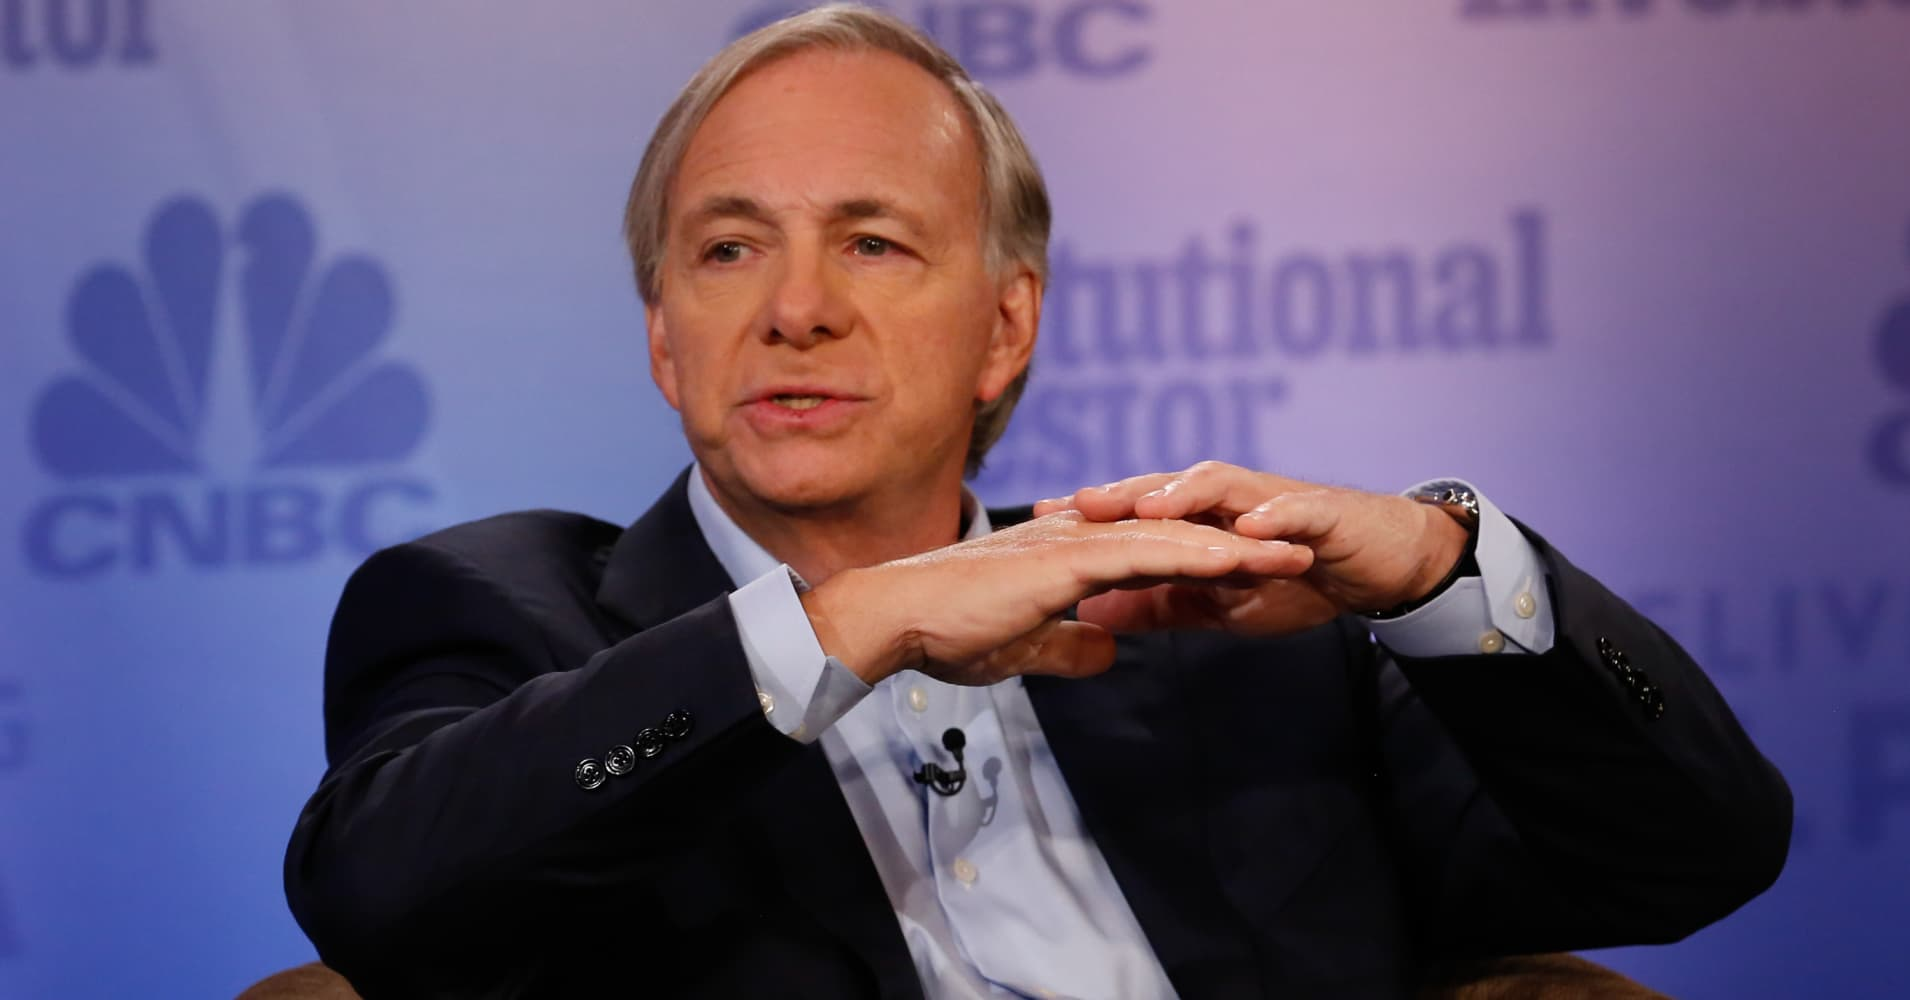 cnbc.com - Catherine Clifford - Hedge fund billionaire Ray Dalio: 'Capitalism basically is not working for the majority of people